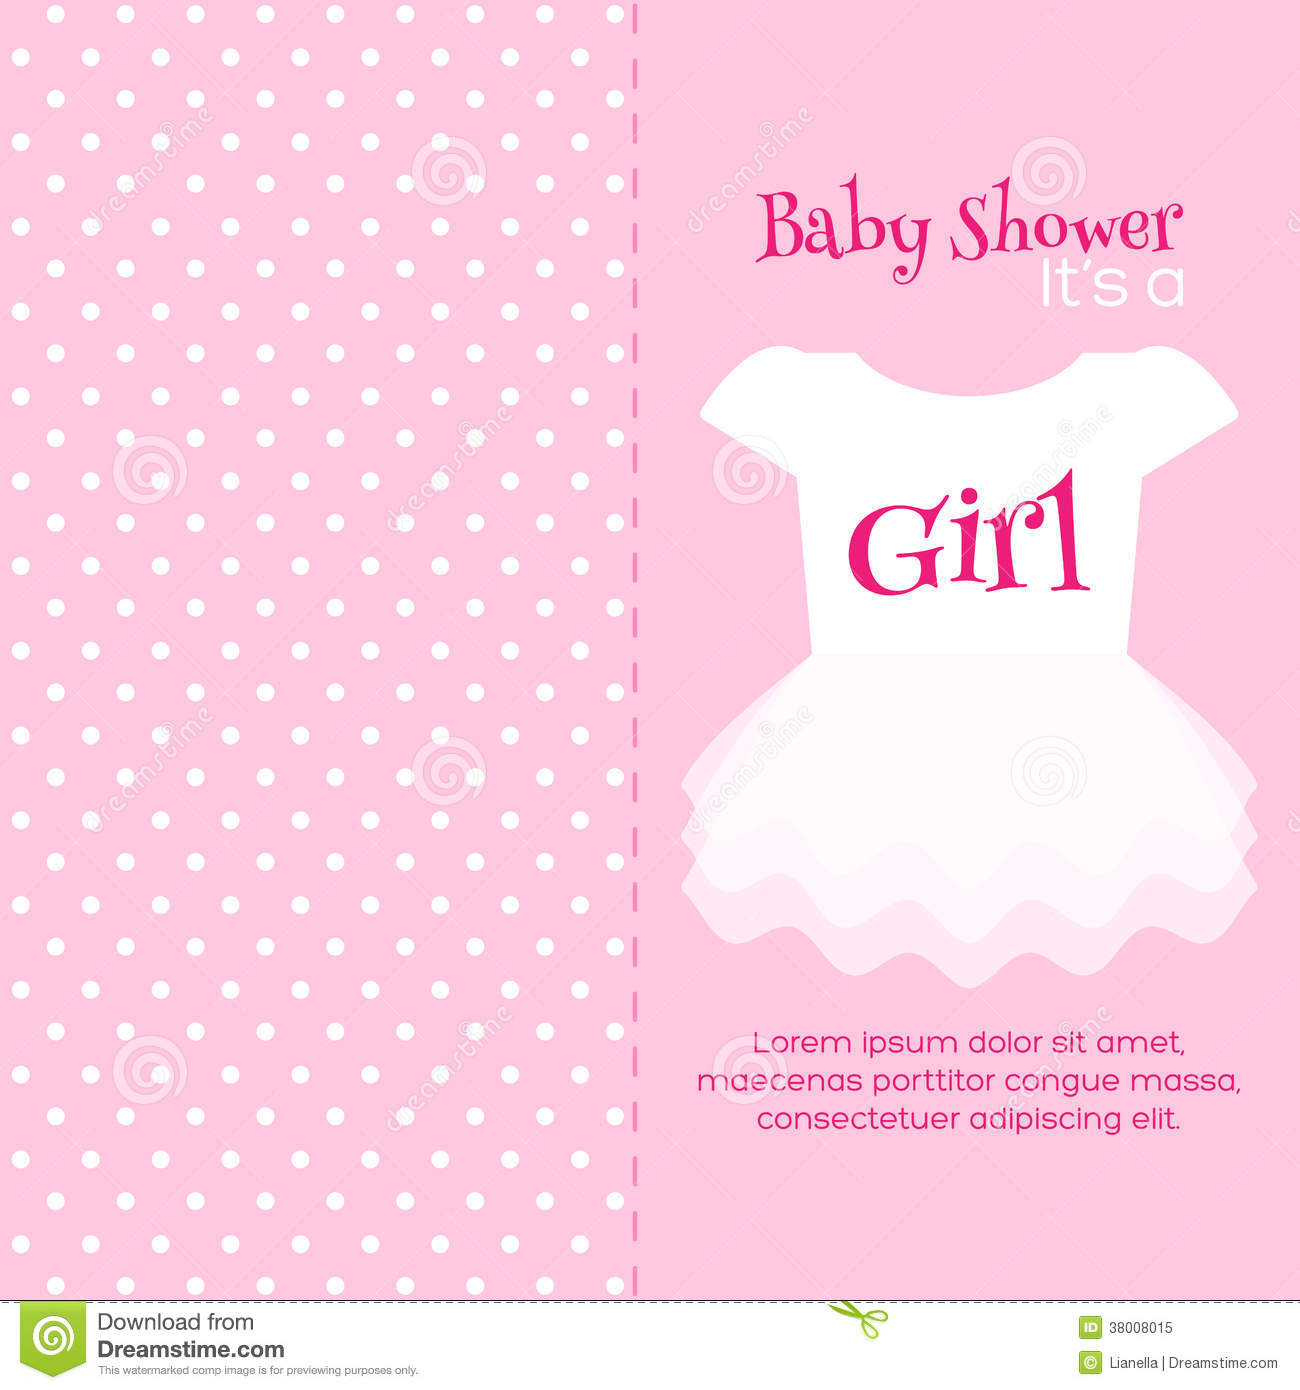 Baby Shower Invitation Template. Decorative, Cute.  Baby Shower Invitations Templates Free